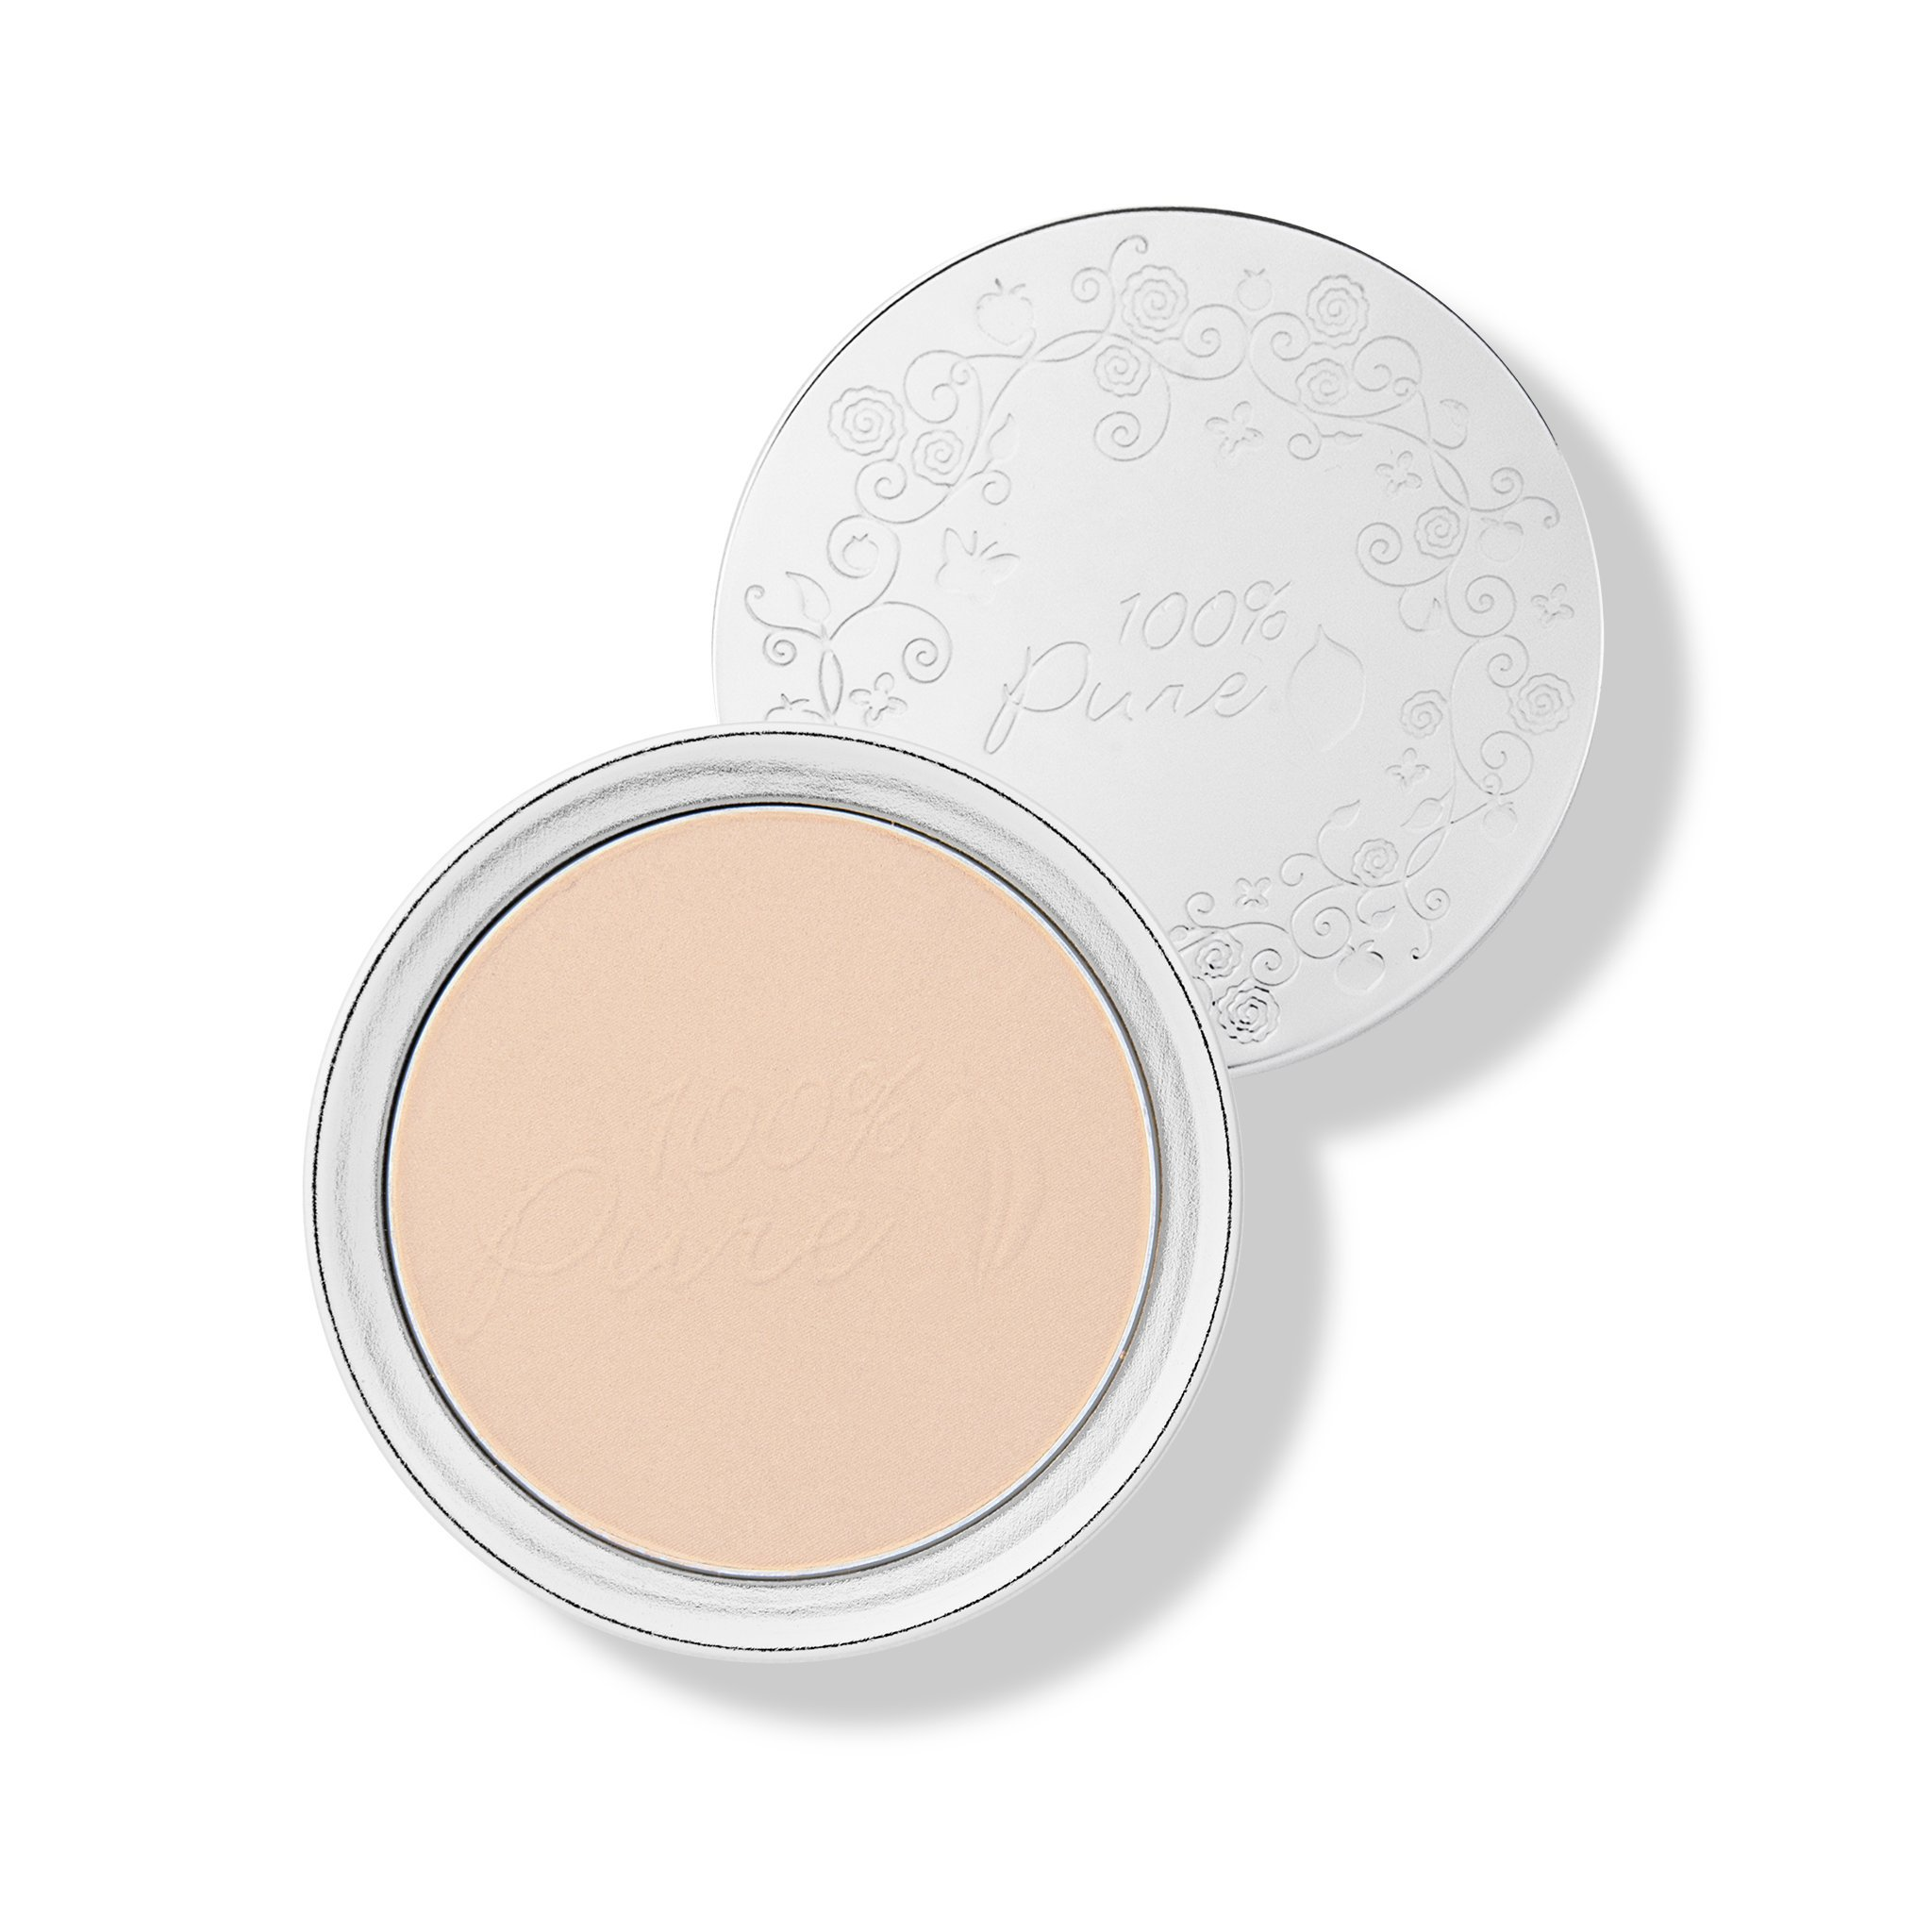 100% Pure Healthy Face Powder Foundations with Sun Protection, White Peach